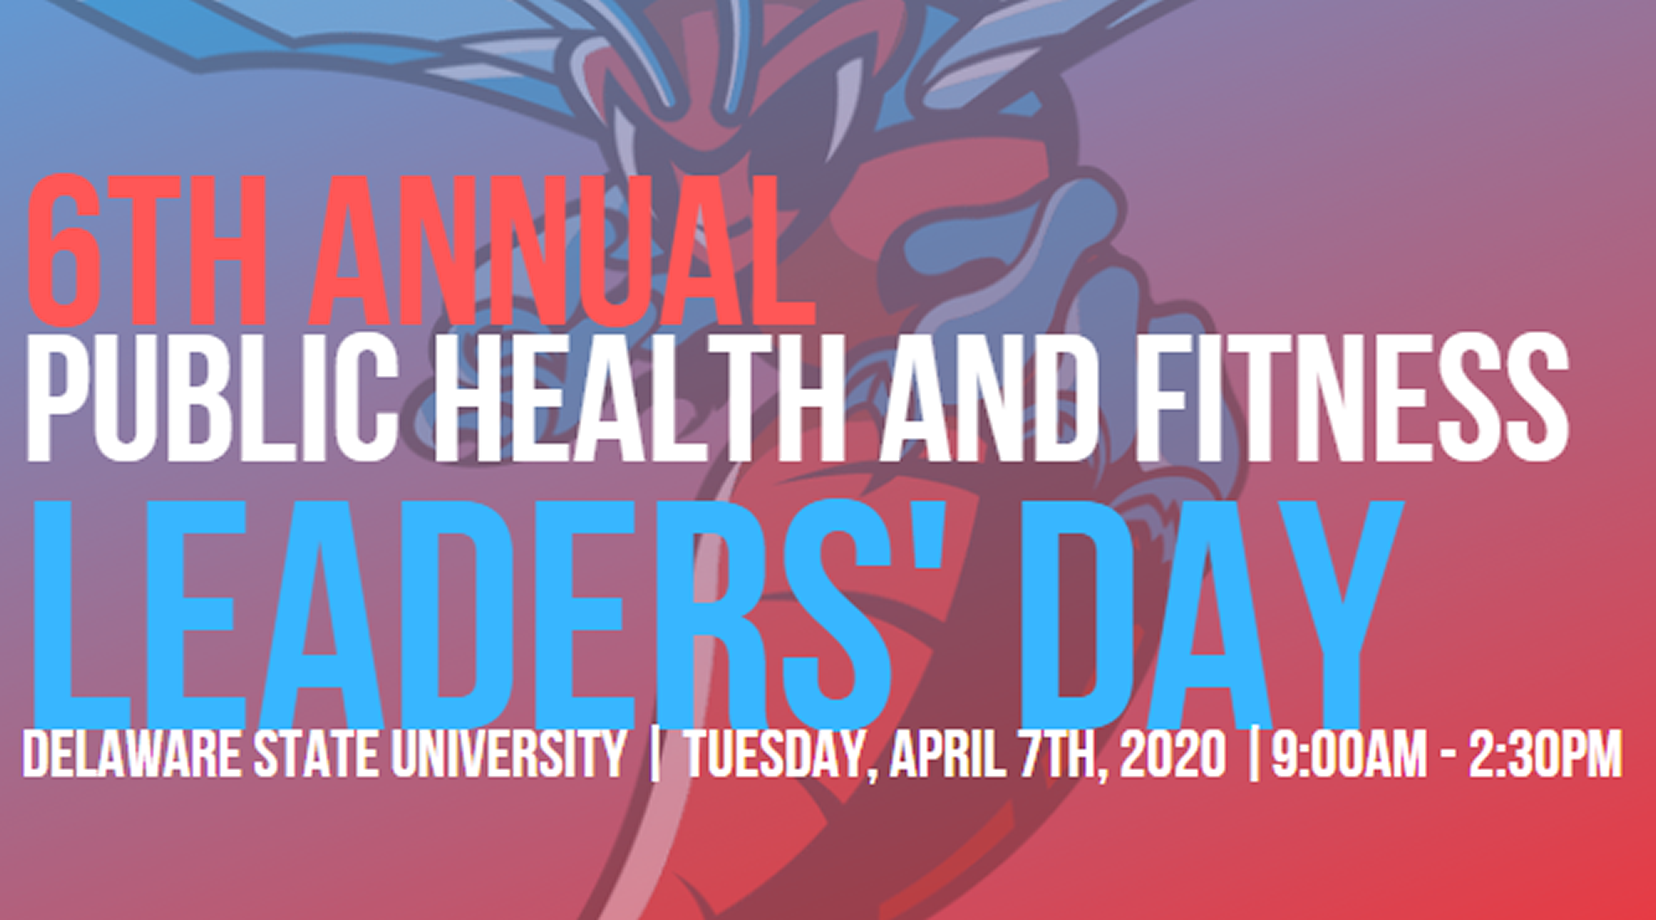 6th Annual Public Health and Fitness Leaders' Day